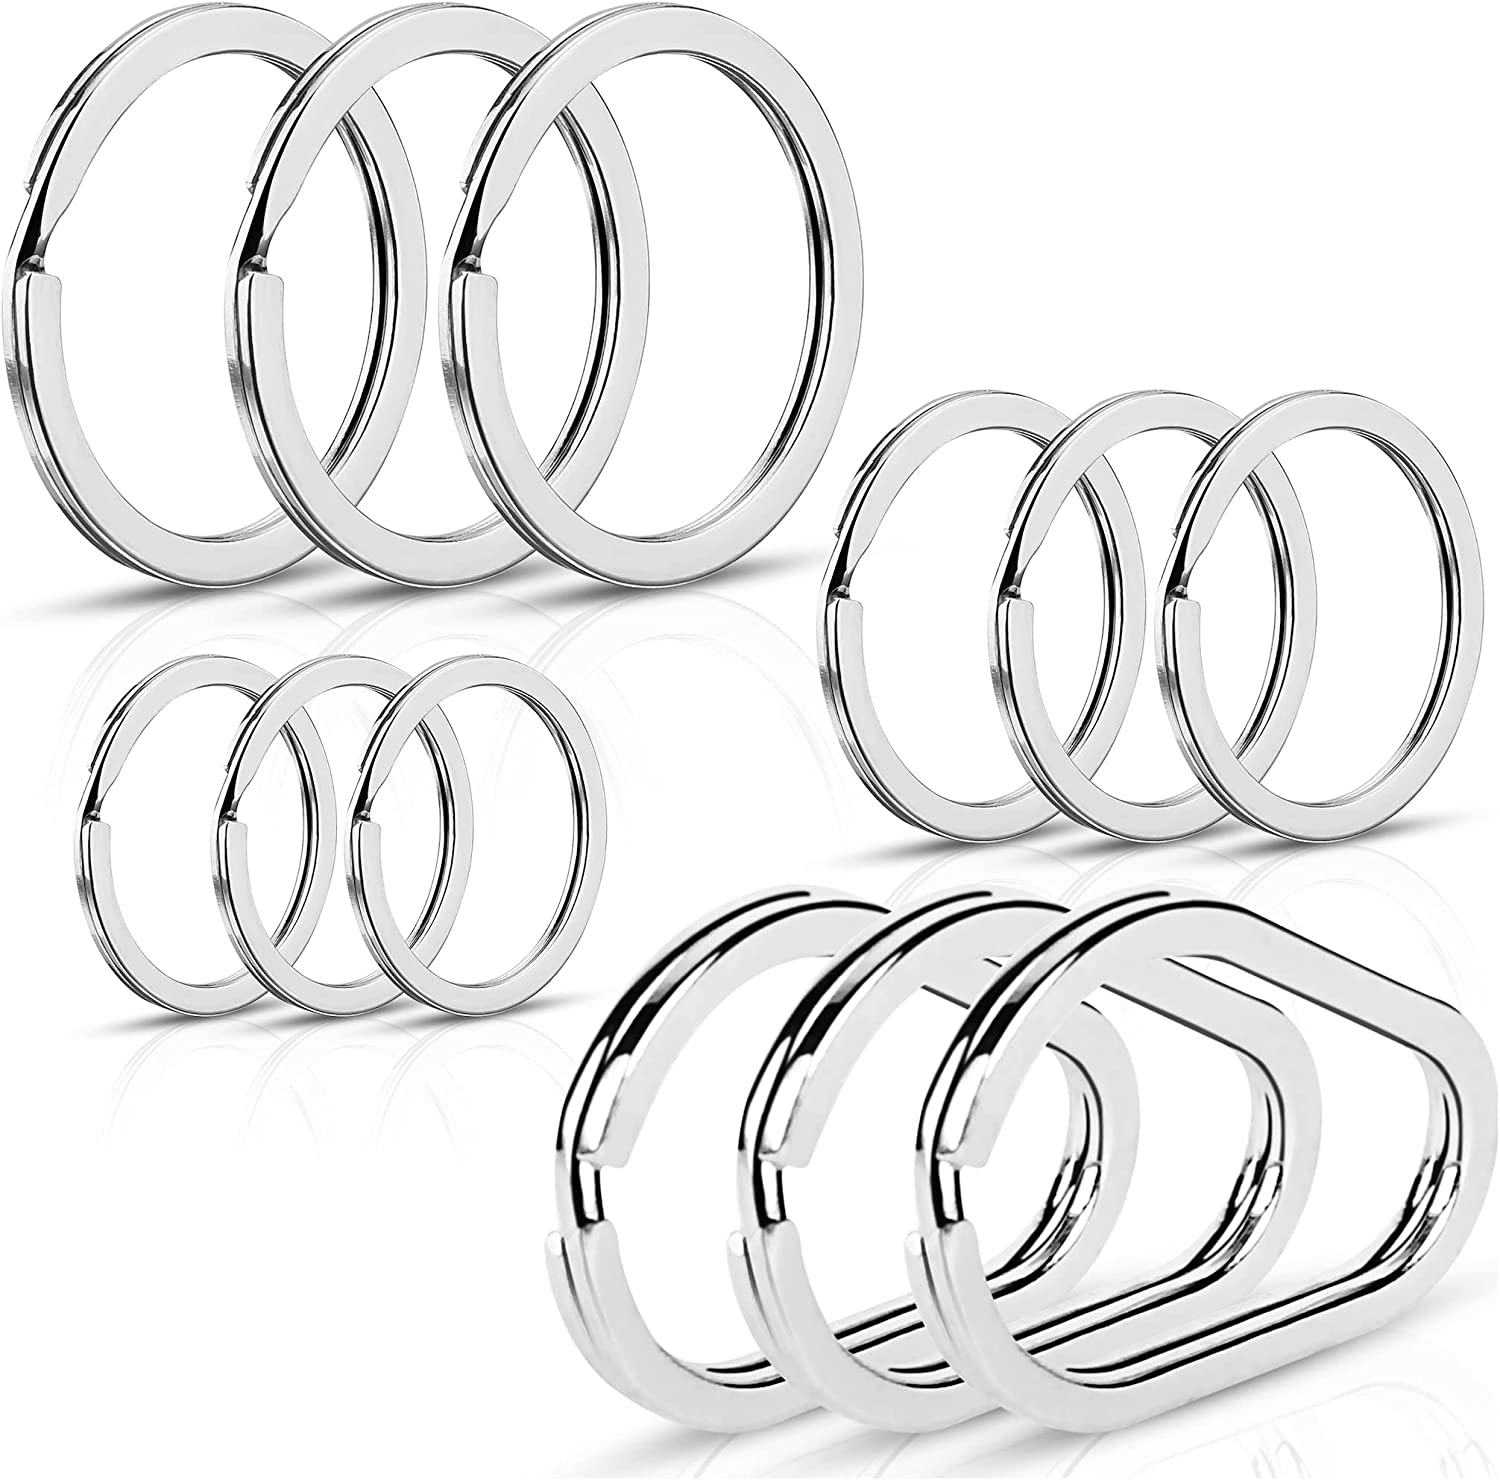 (12pcs) Keyrings, Assorted Flat Metal Key Rings Including Unique Oval Design, 4 Different Sizes, Multipurpose Use for Car, Home, Office Keys and Zipper Pulls…